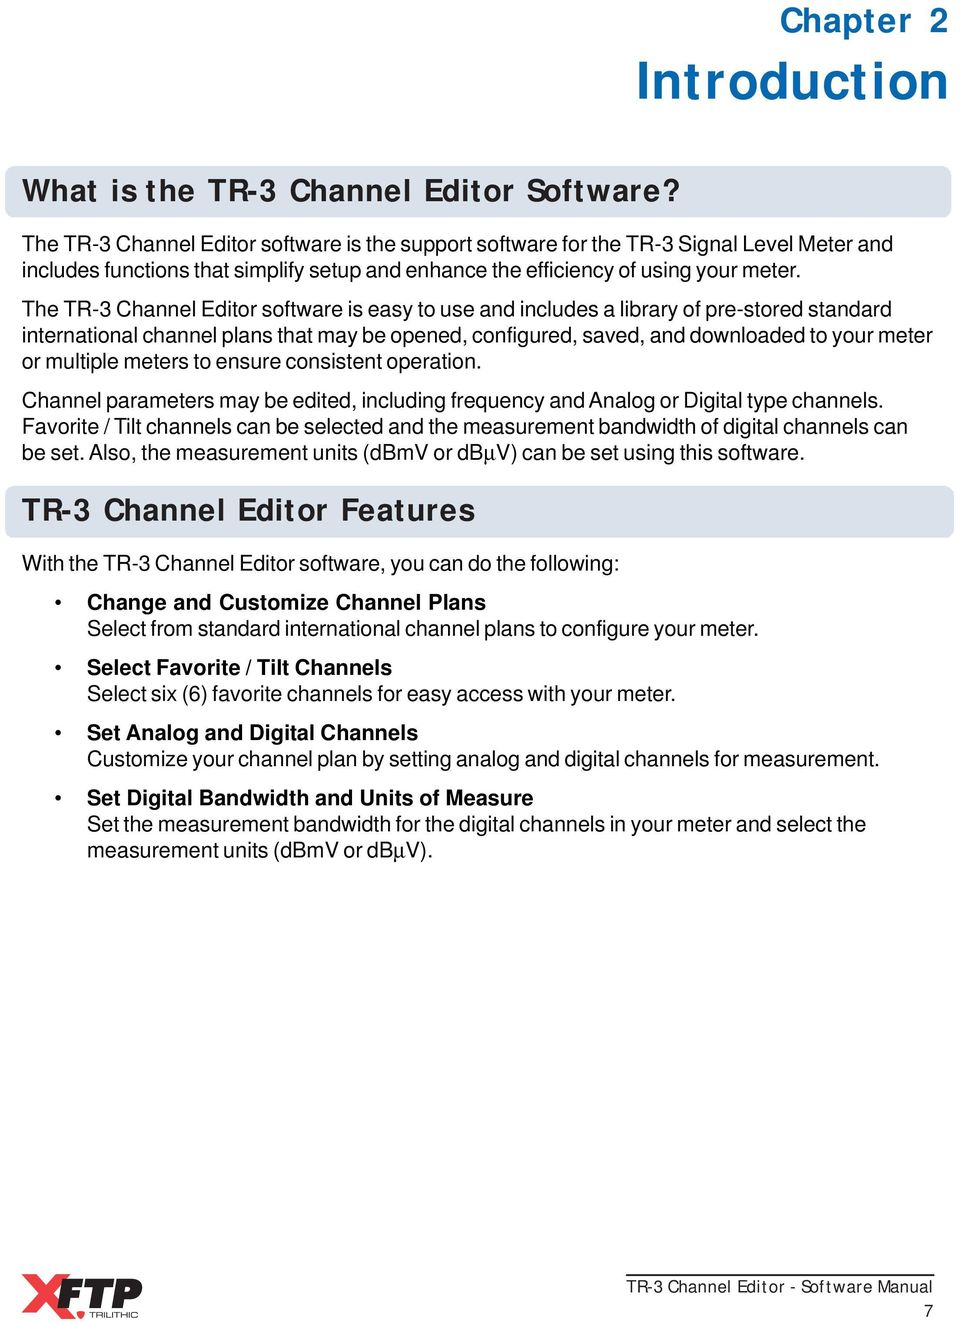 The TR-3 Channel Editor software is easy to use and includes a library of pre-stored standard international channel plans that may be opened, configured, saved, and downloaded to your meter or